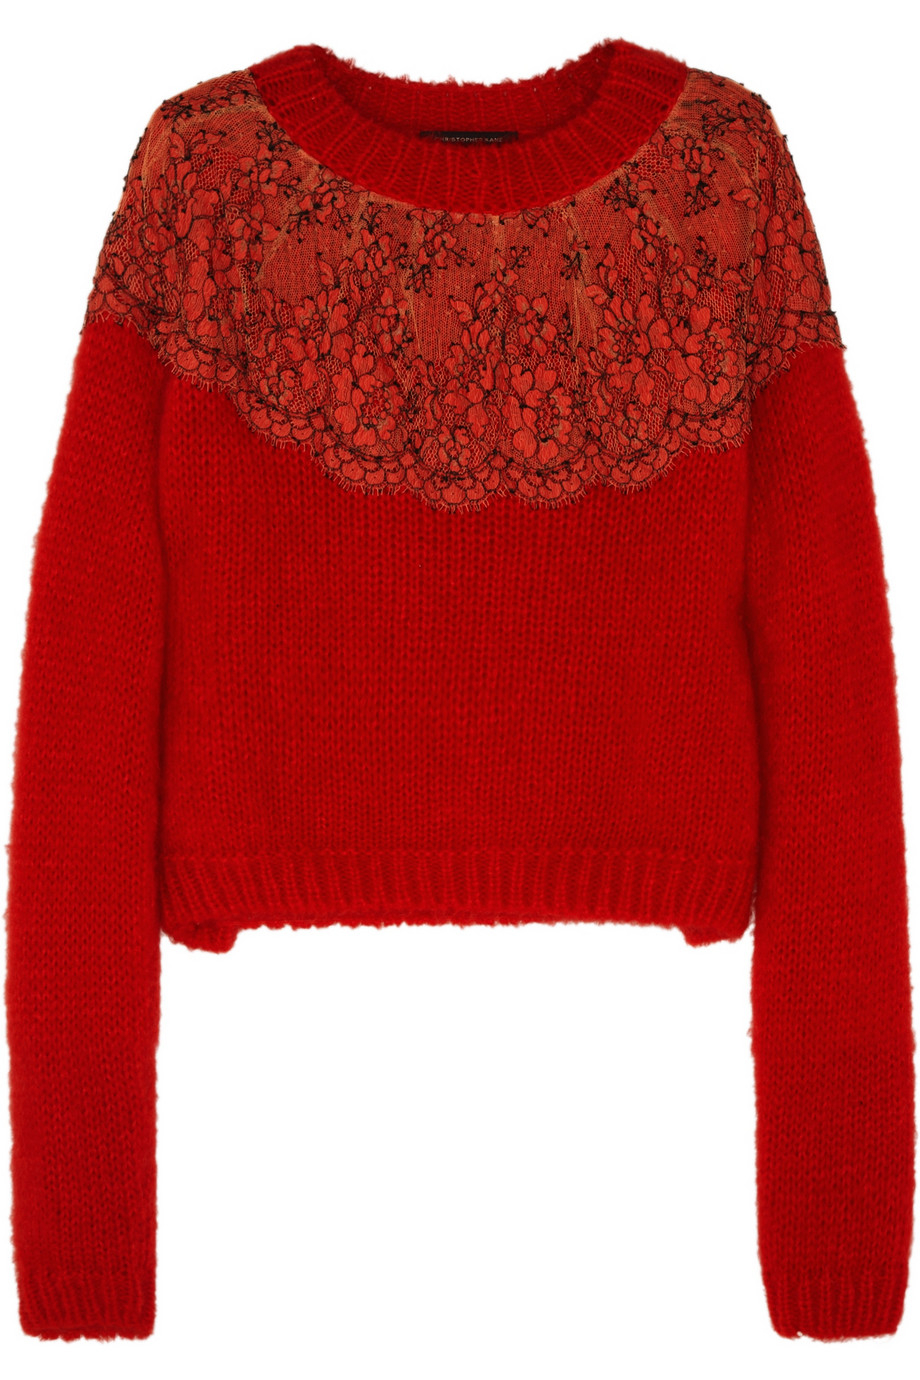 Christopher kane Lace-Appliquéd Angora-Blend Sweater in Red | Lyst